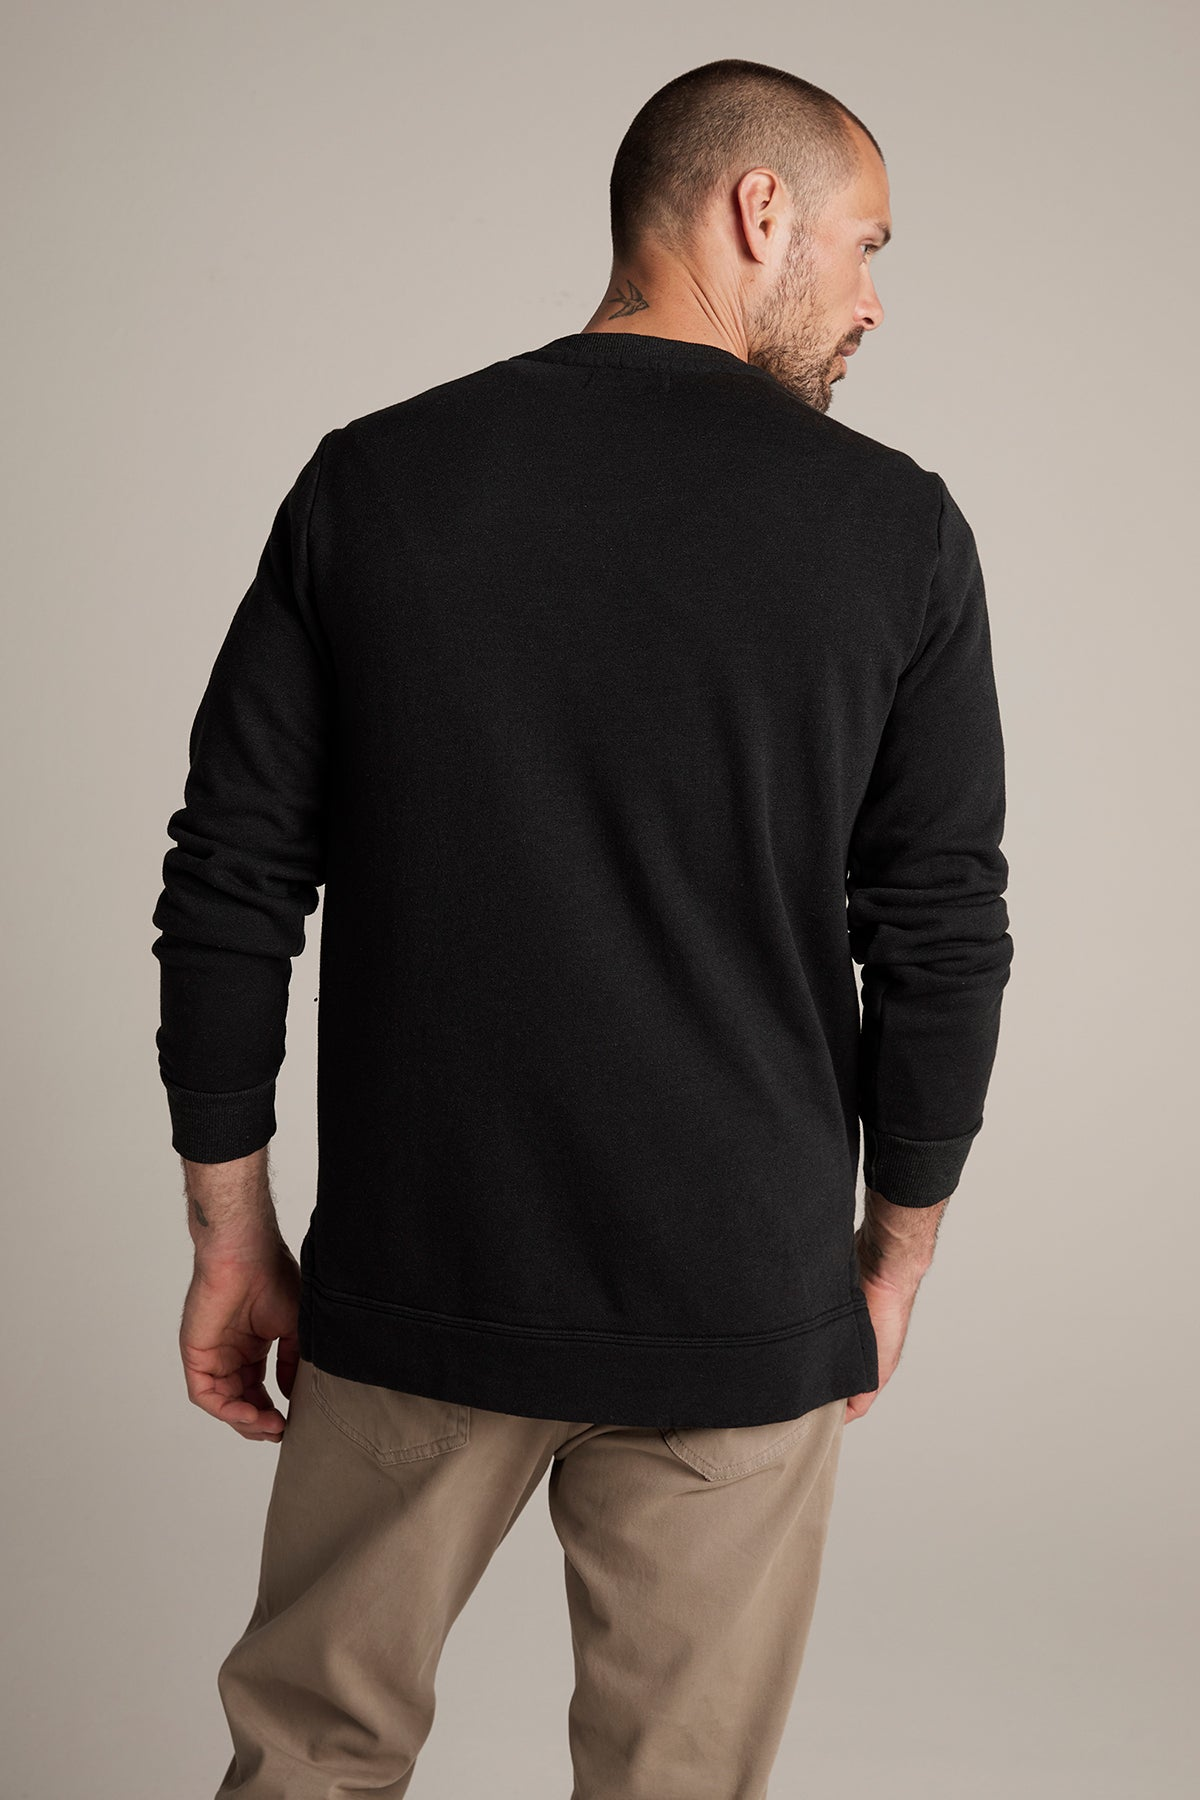 HEARNS JASPE SHERPA SWEATSHIRT